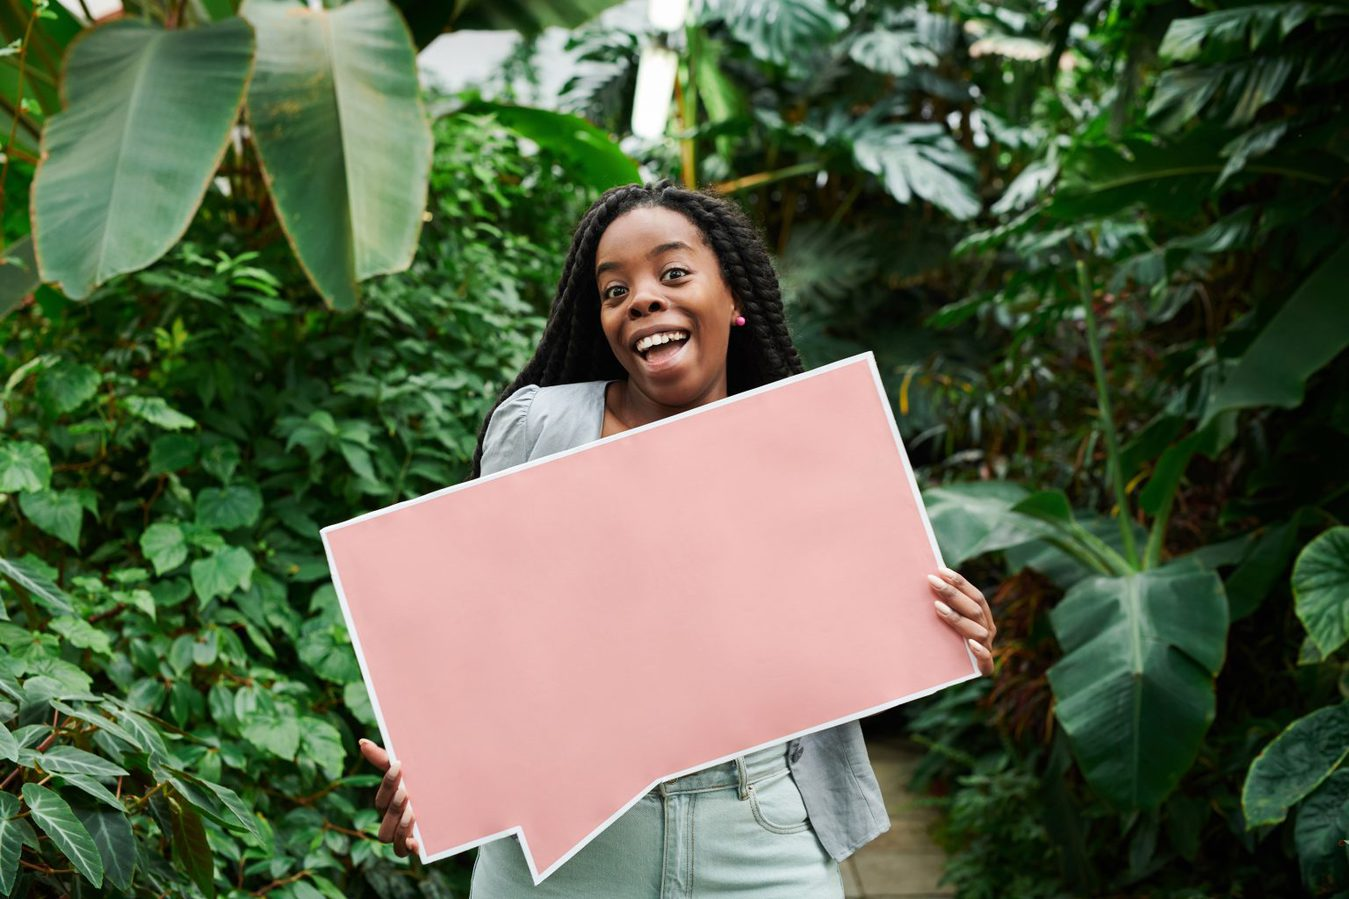 woman standing amid plants holding giant pink speech bubble